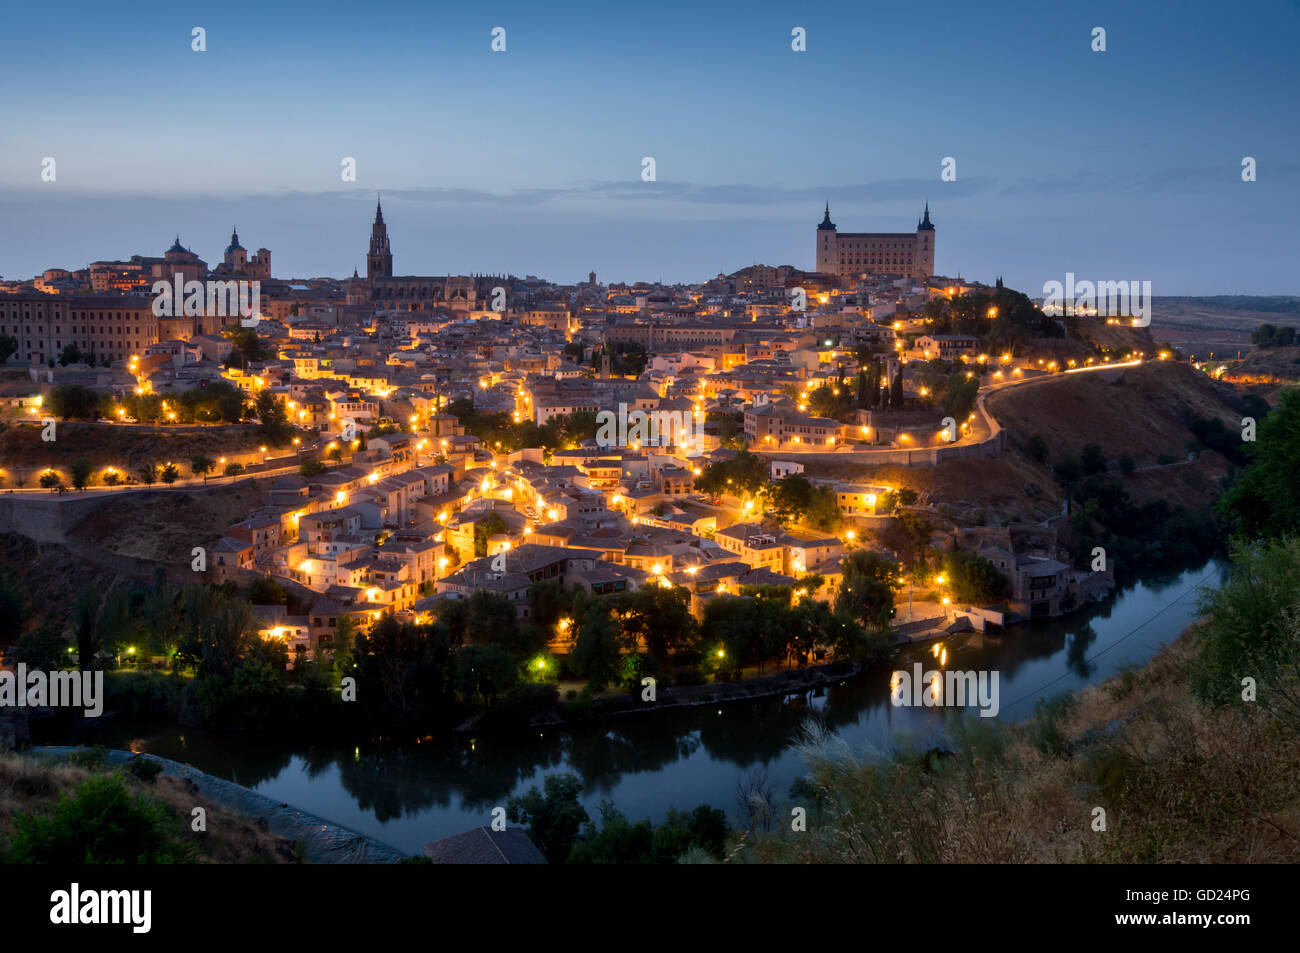 Cityscape at dusk, Toledo, Castile-La Mancha, Spain, Europe - Stock Image